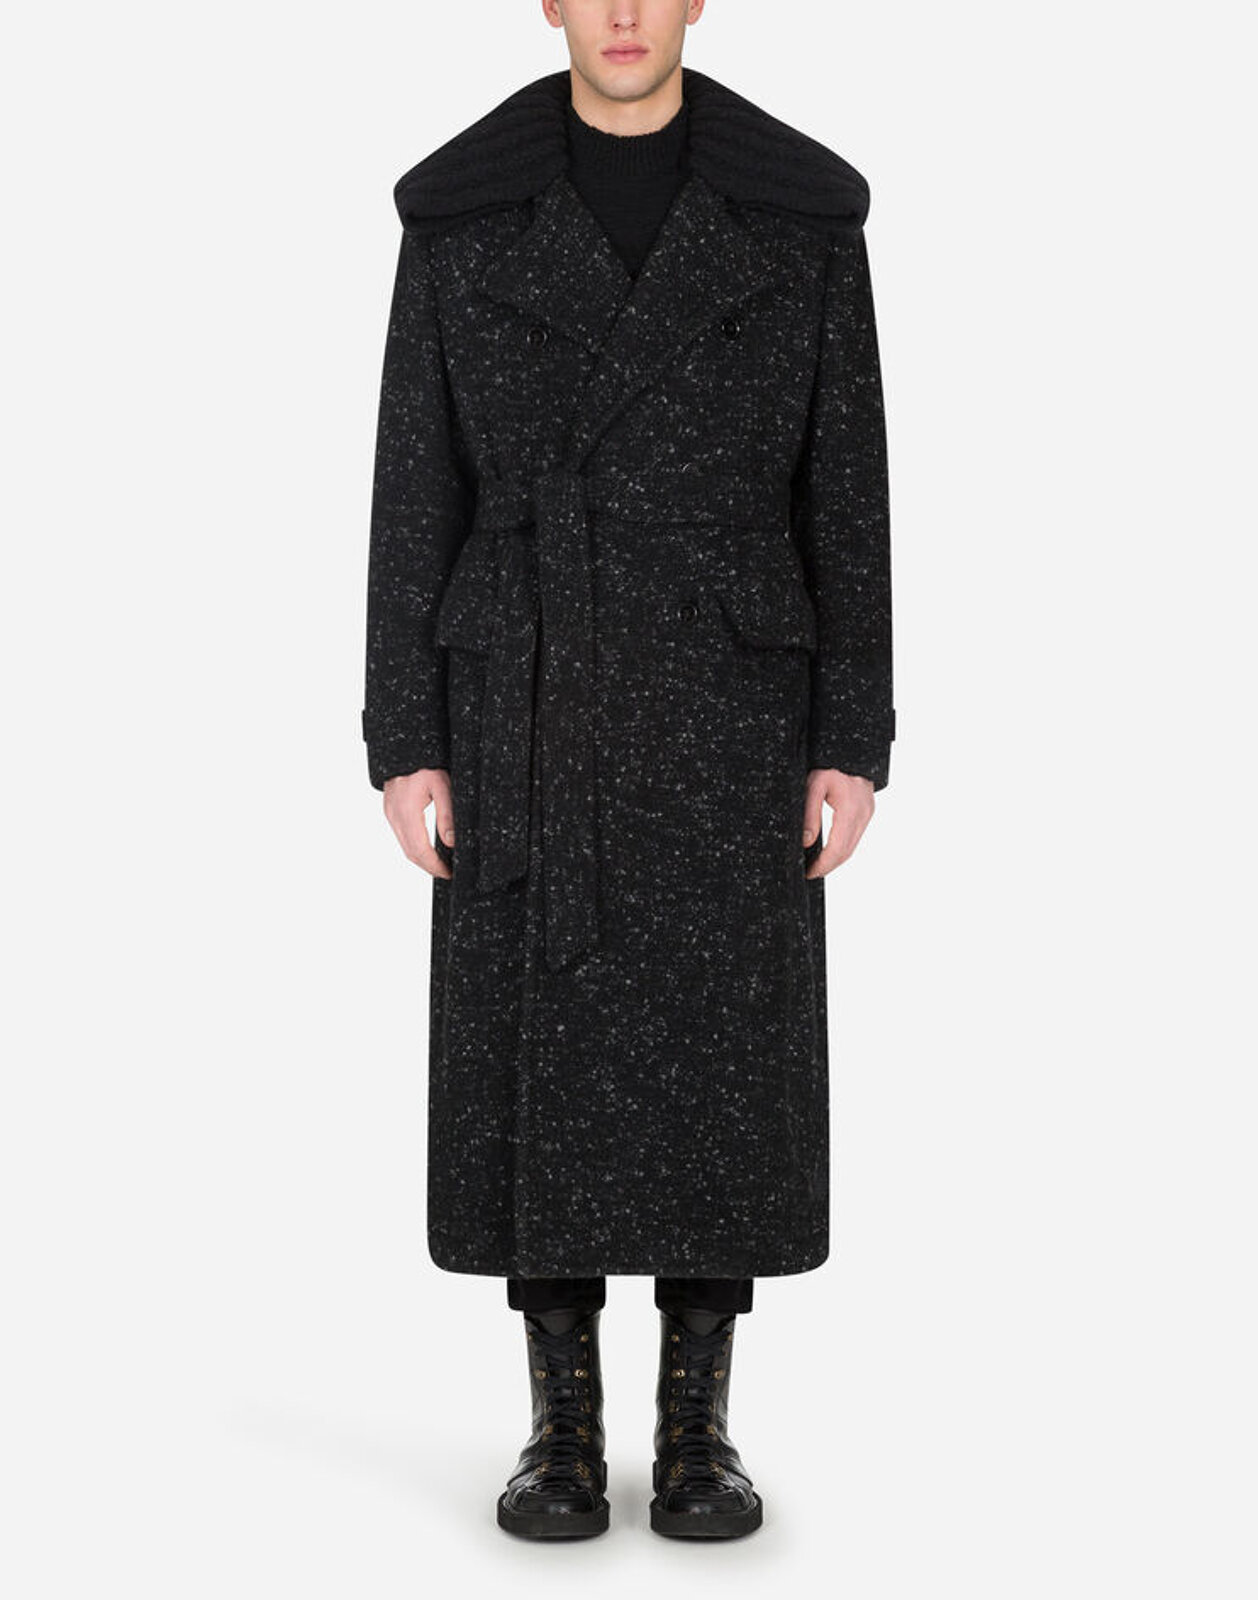 Double Breasted Coat With Belt - Dolce & Gabbana